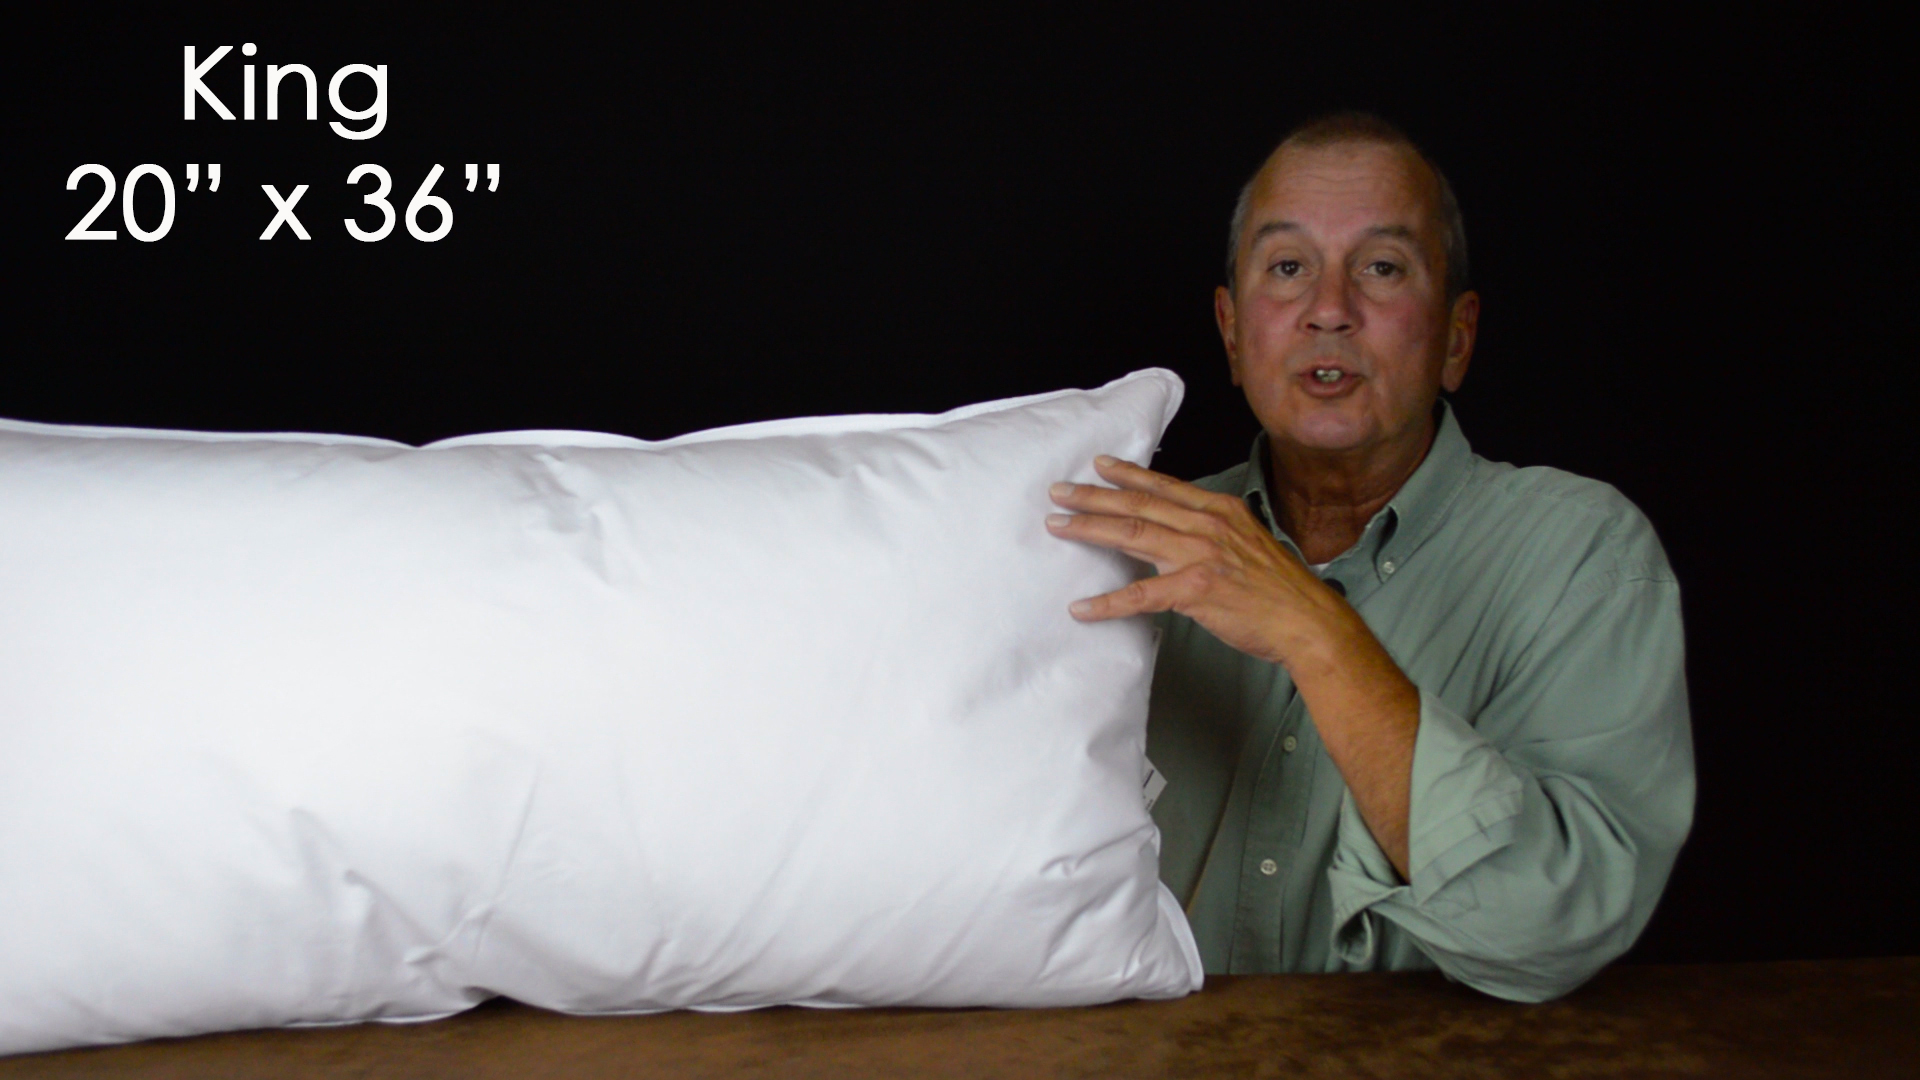 King pillows are 20